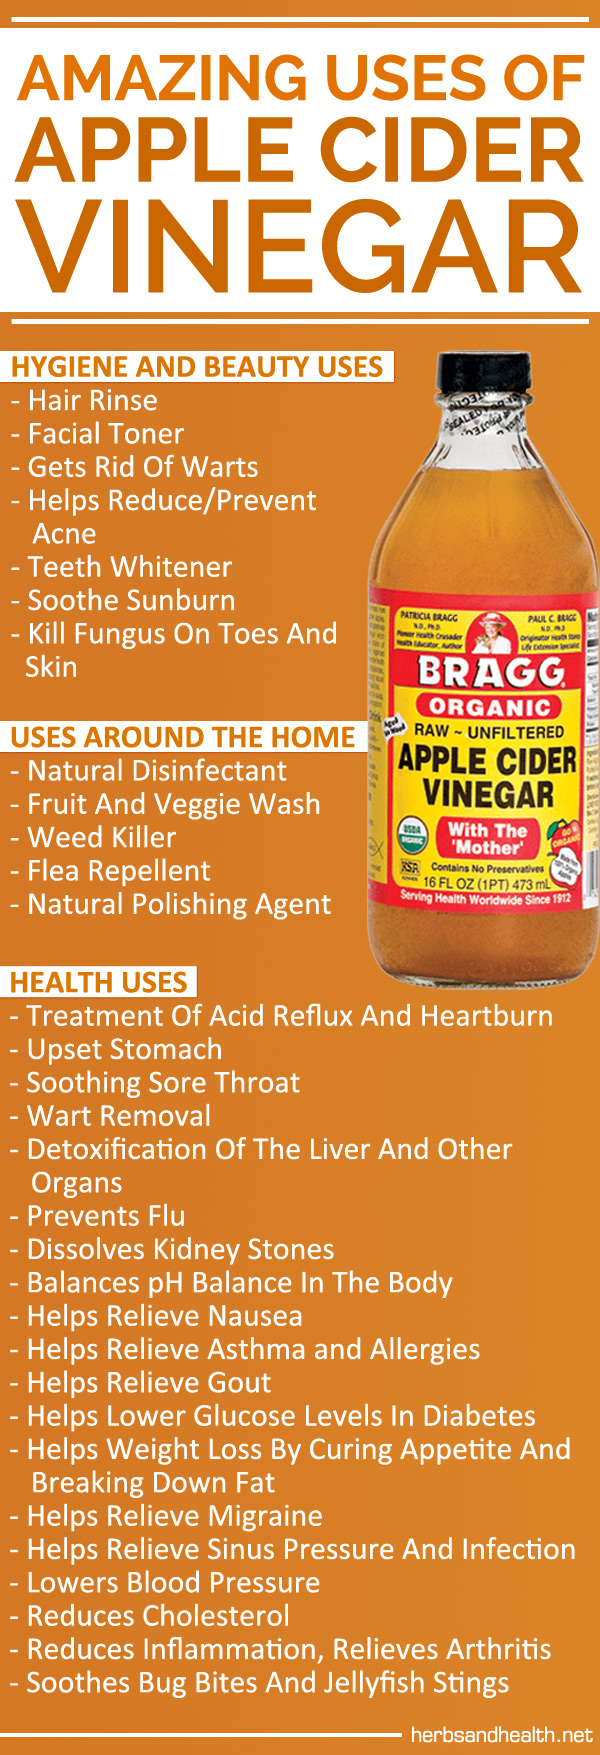 Amazing Uses Of Apple Cider Vinegar - Herbs Info #applecidervinegarbenefits